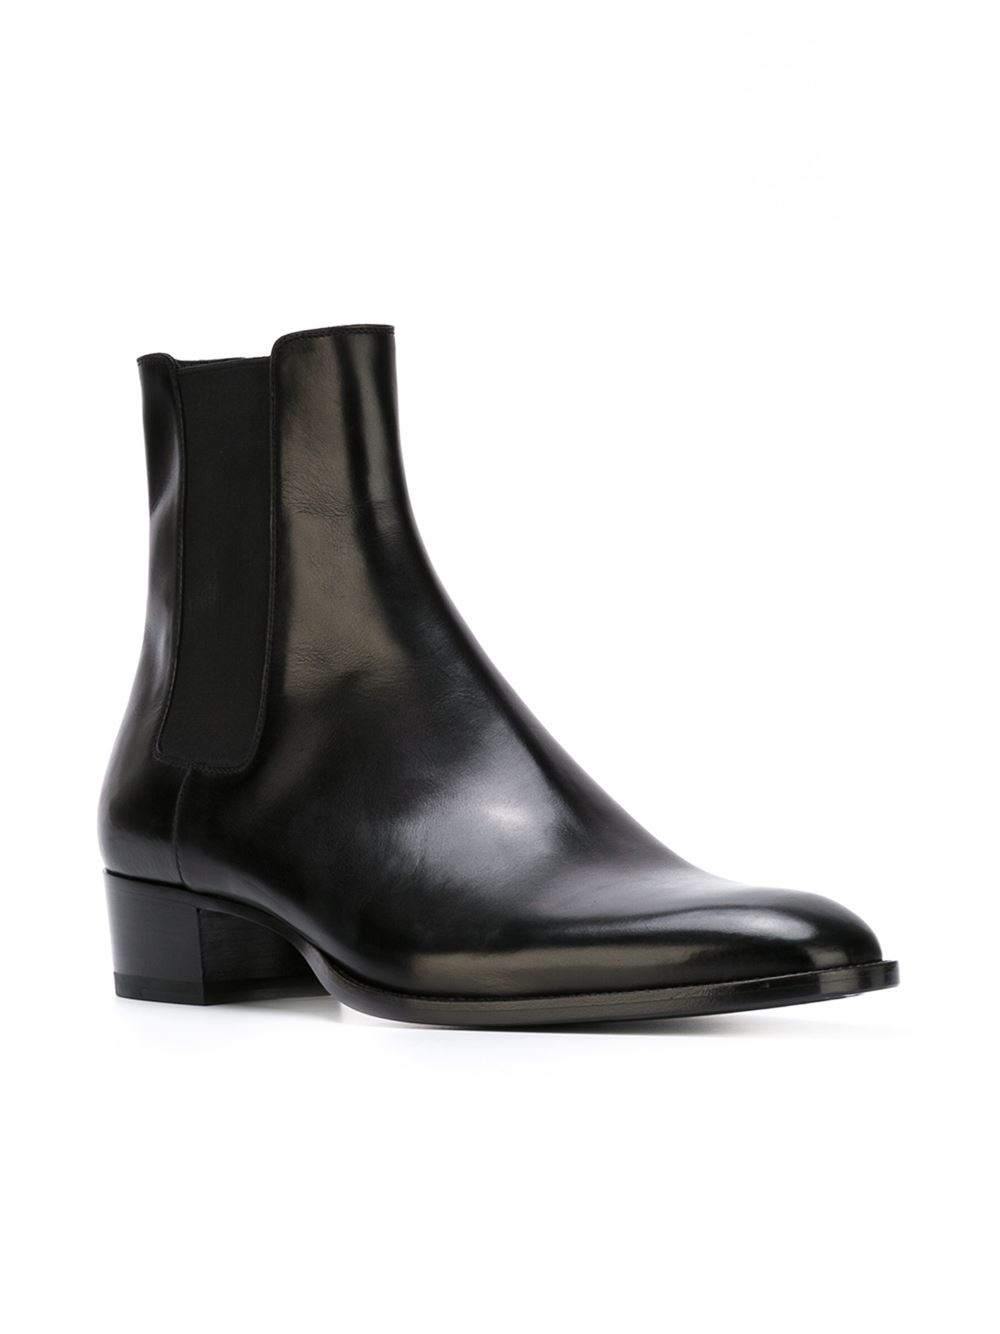 Saint Laurent Hedi Chelsea Boots In Black For Men Lyst